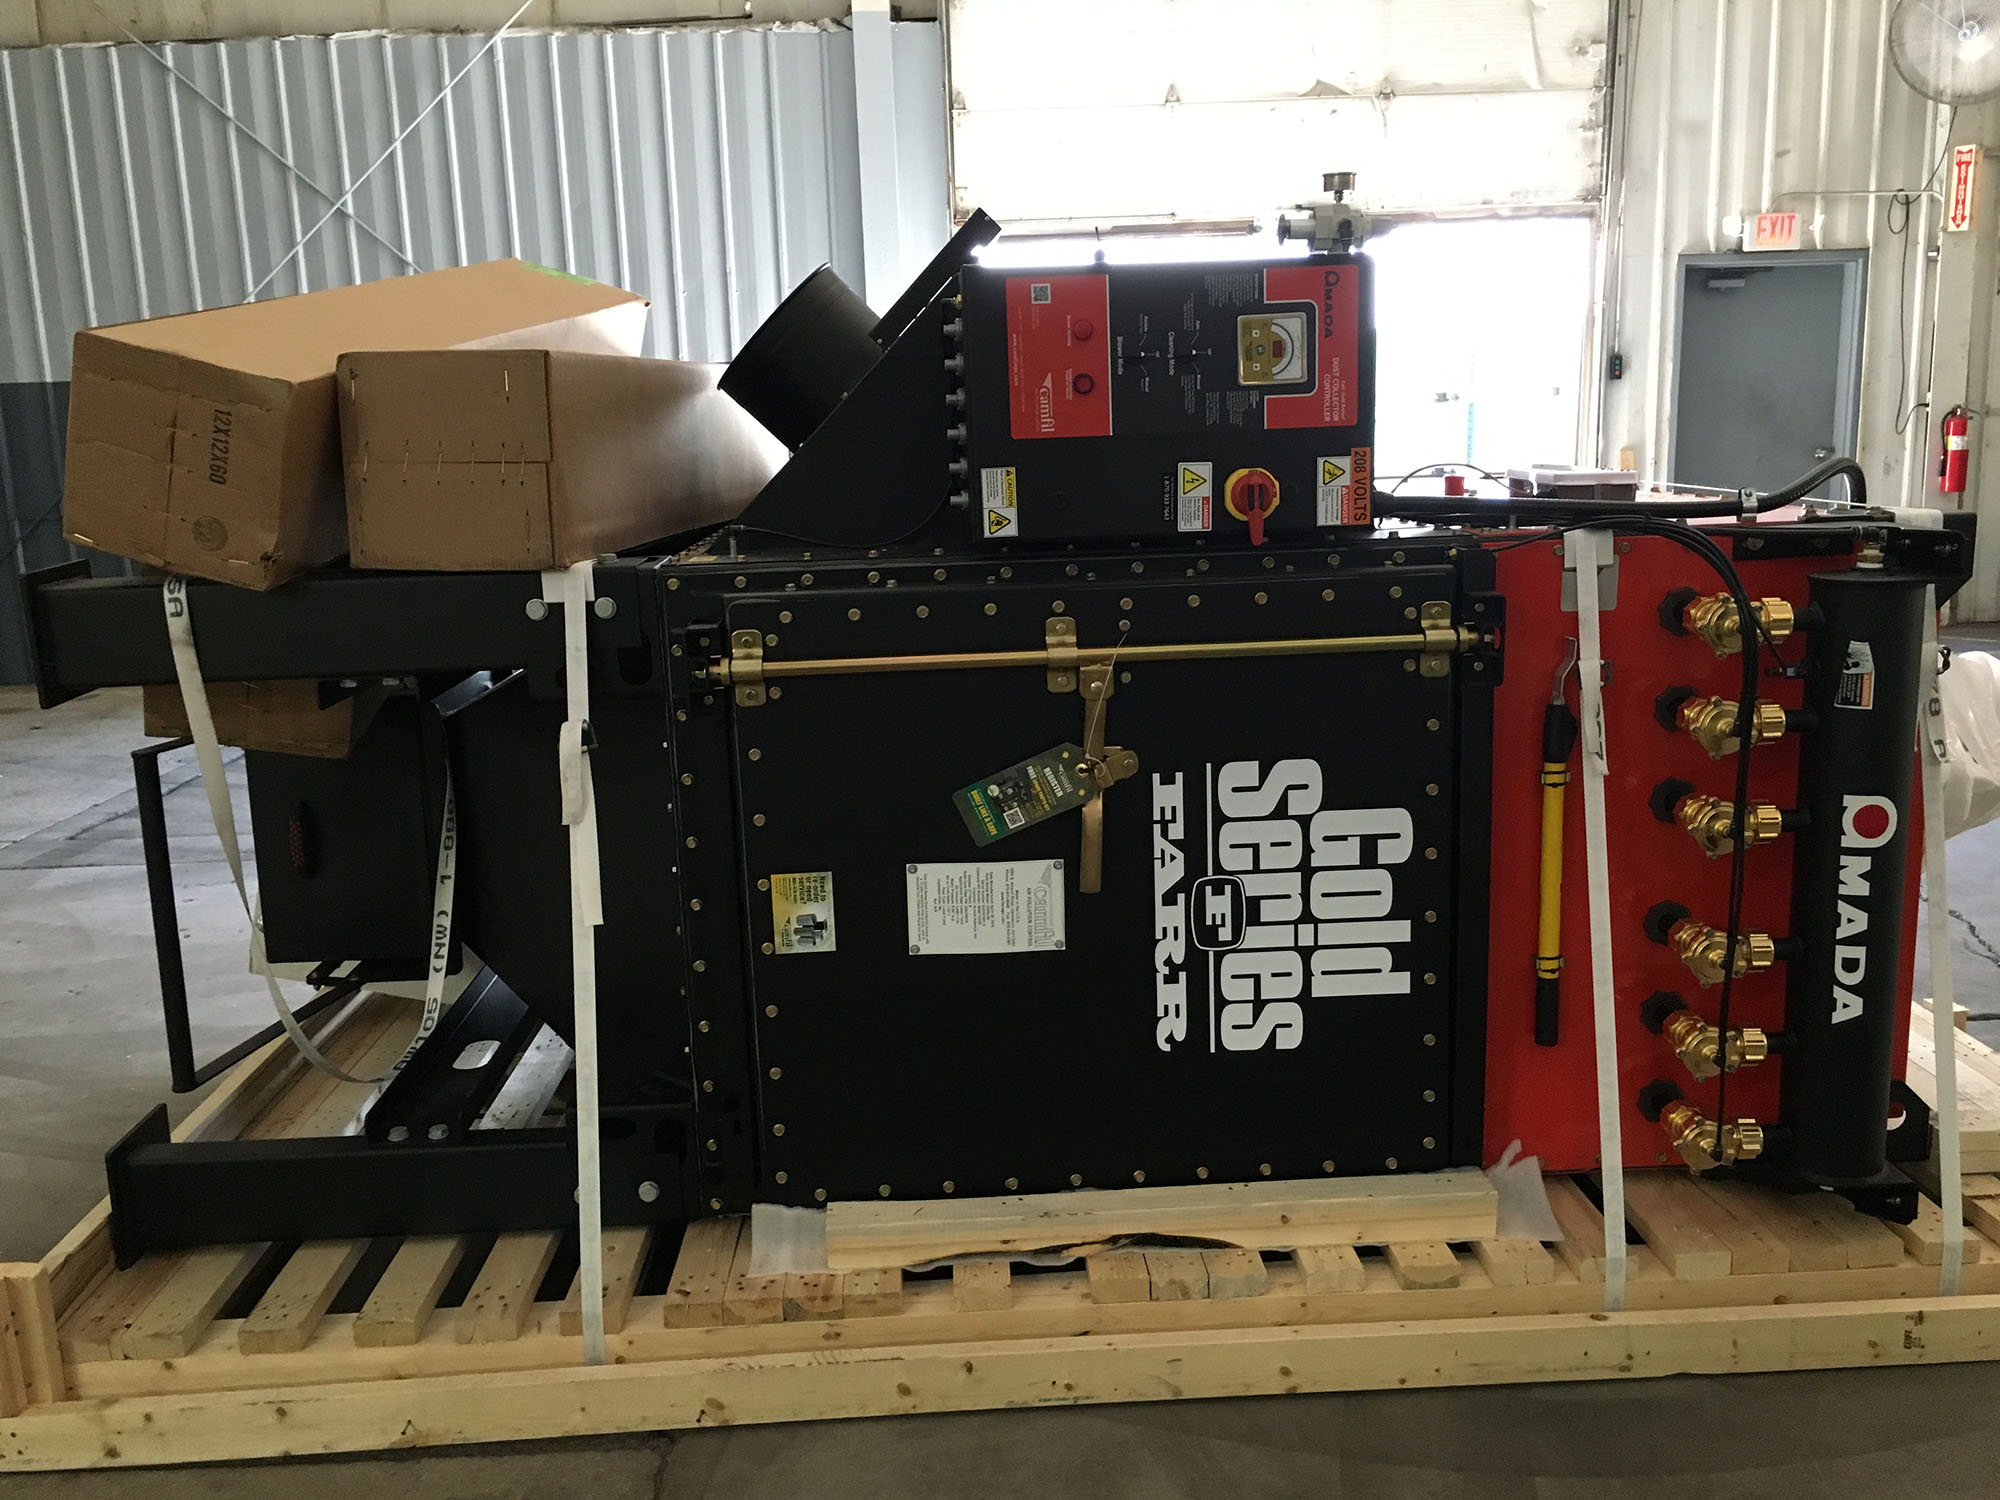 Unpacking the new fiber laser cutter